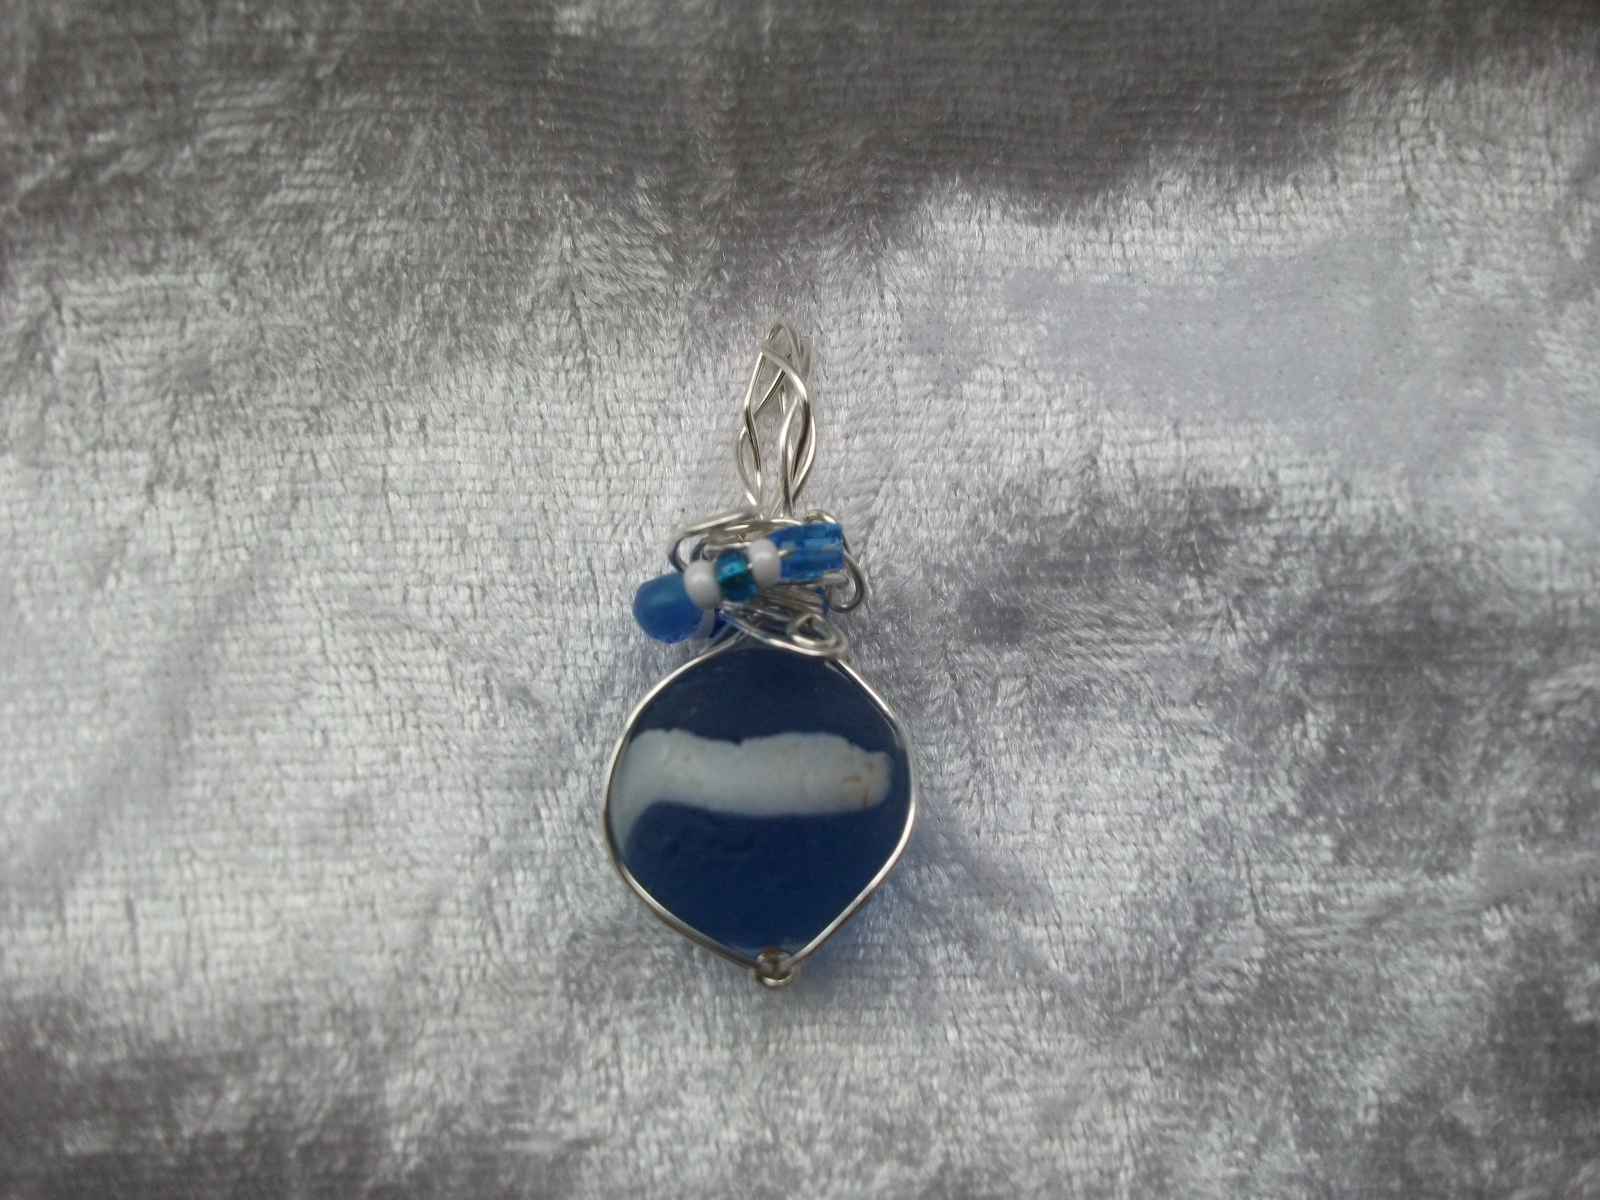 http://4.bp.blogspot.com/-be5HlIrjTE8/TxxactorkfI/AAAAAAAAAWk/KQIrrfqkTXY/s1600/Blue+and+White+Sea+Glass+Marble+Pendant.jpg